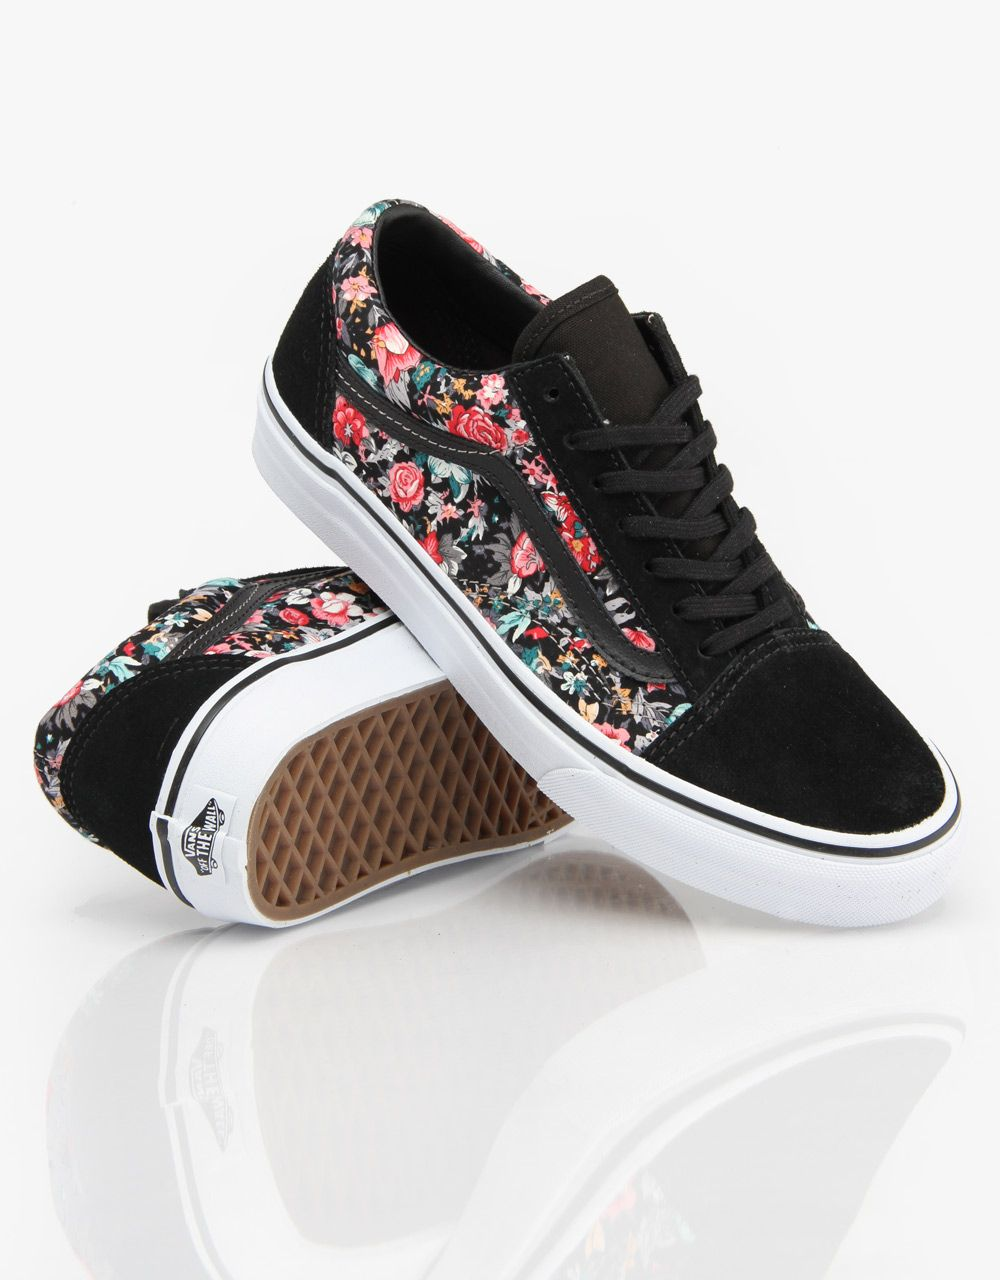 70a4e1955c Vans Old Skool Girls Skate Shoes - Multi Floral Black True White -  RouteOne.co.uk